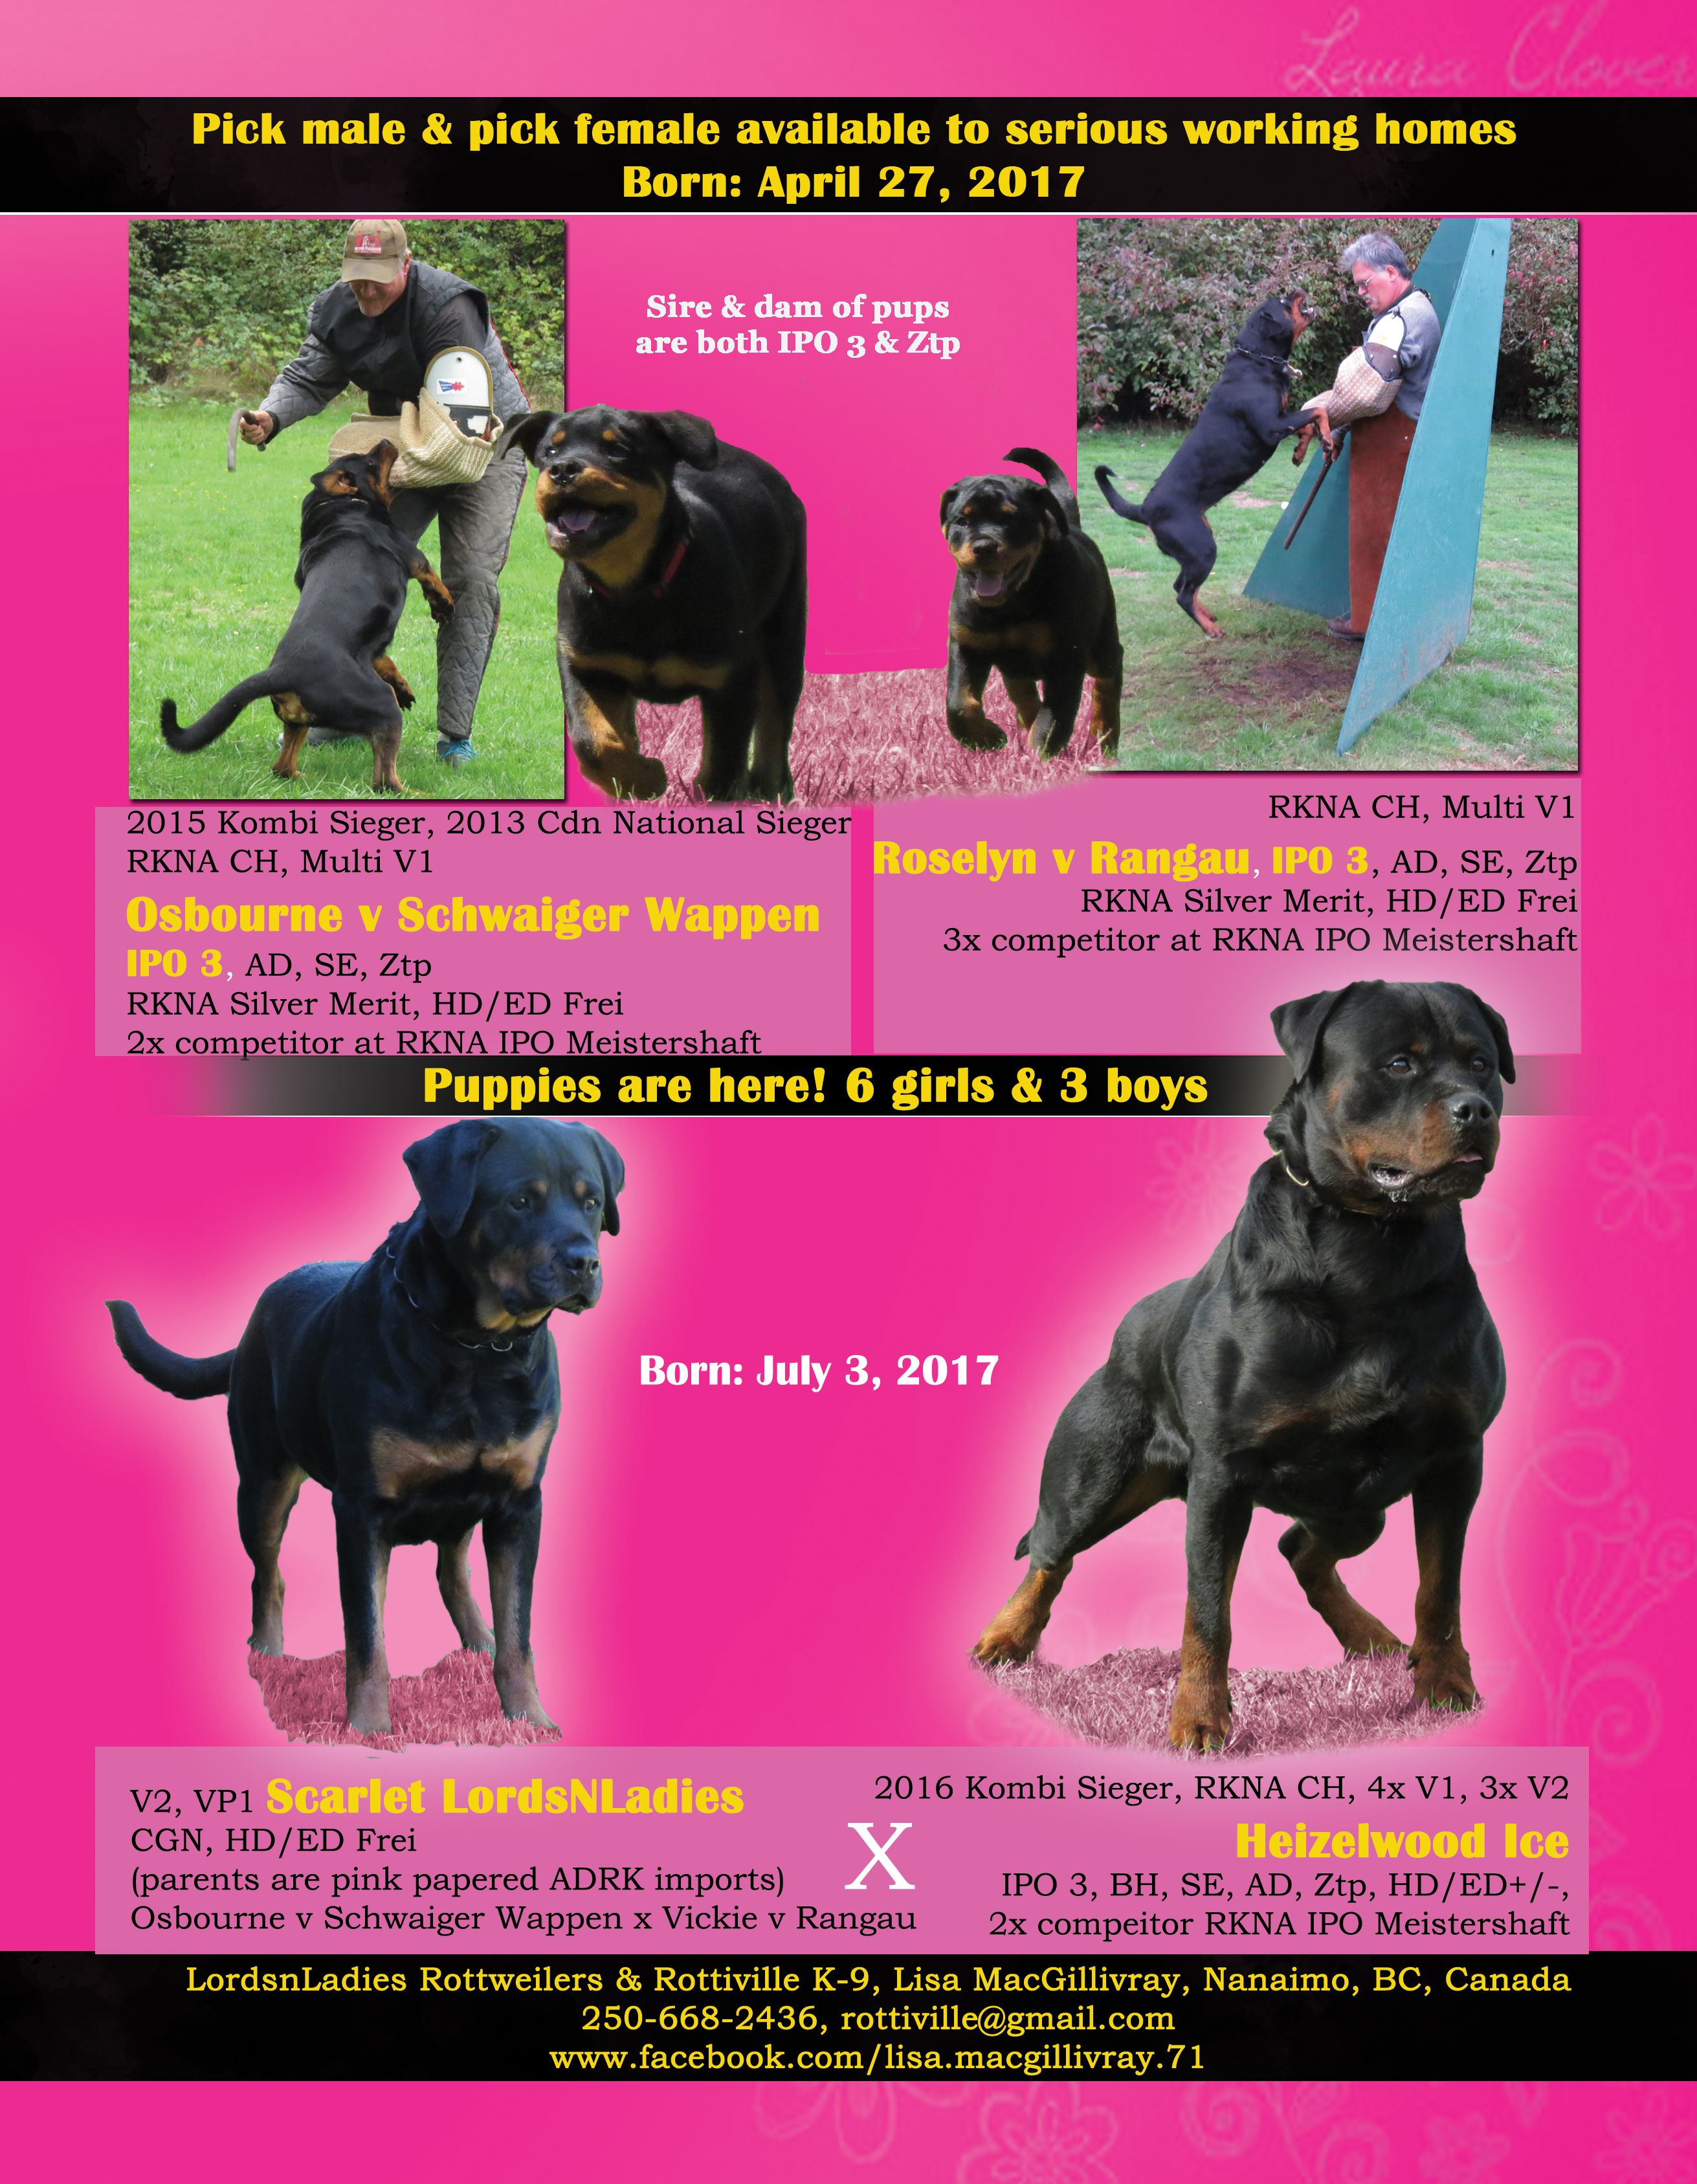 Lordsnladies Rottweilers Rottiville K 9 Lisa Macgillivray Nanaimo Bc Canada 250 668 2436 Rottiville Gmail Com Www Face Rottweiler Breed Rottweiler Stud Dog